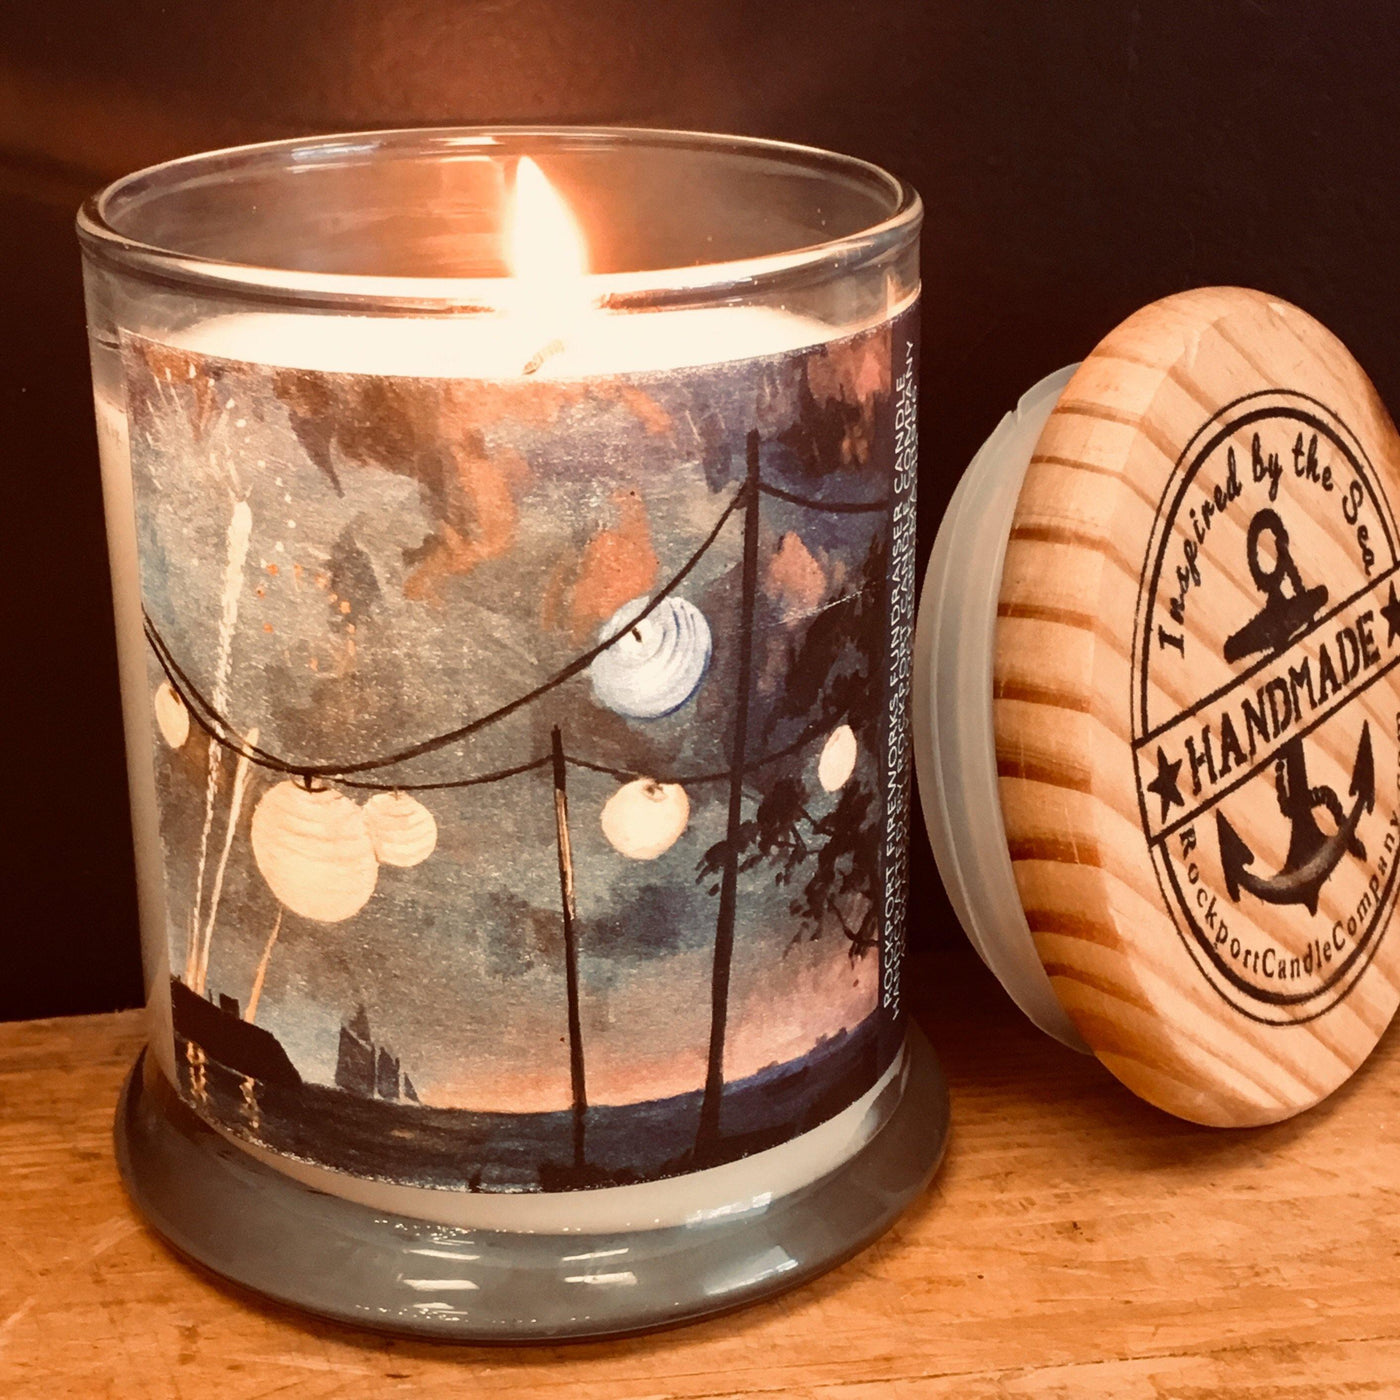 Rockport Fireworks Candle 2019 to Benefit Rockport Fireworks Fund SOLD OUT!